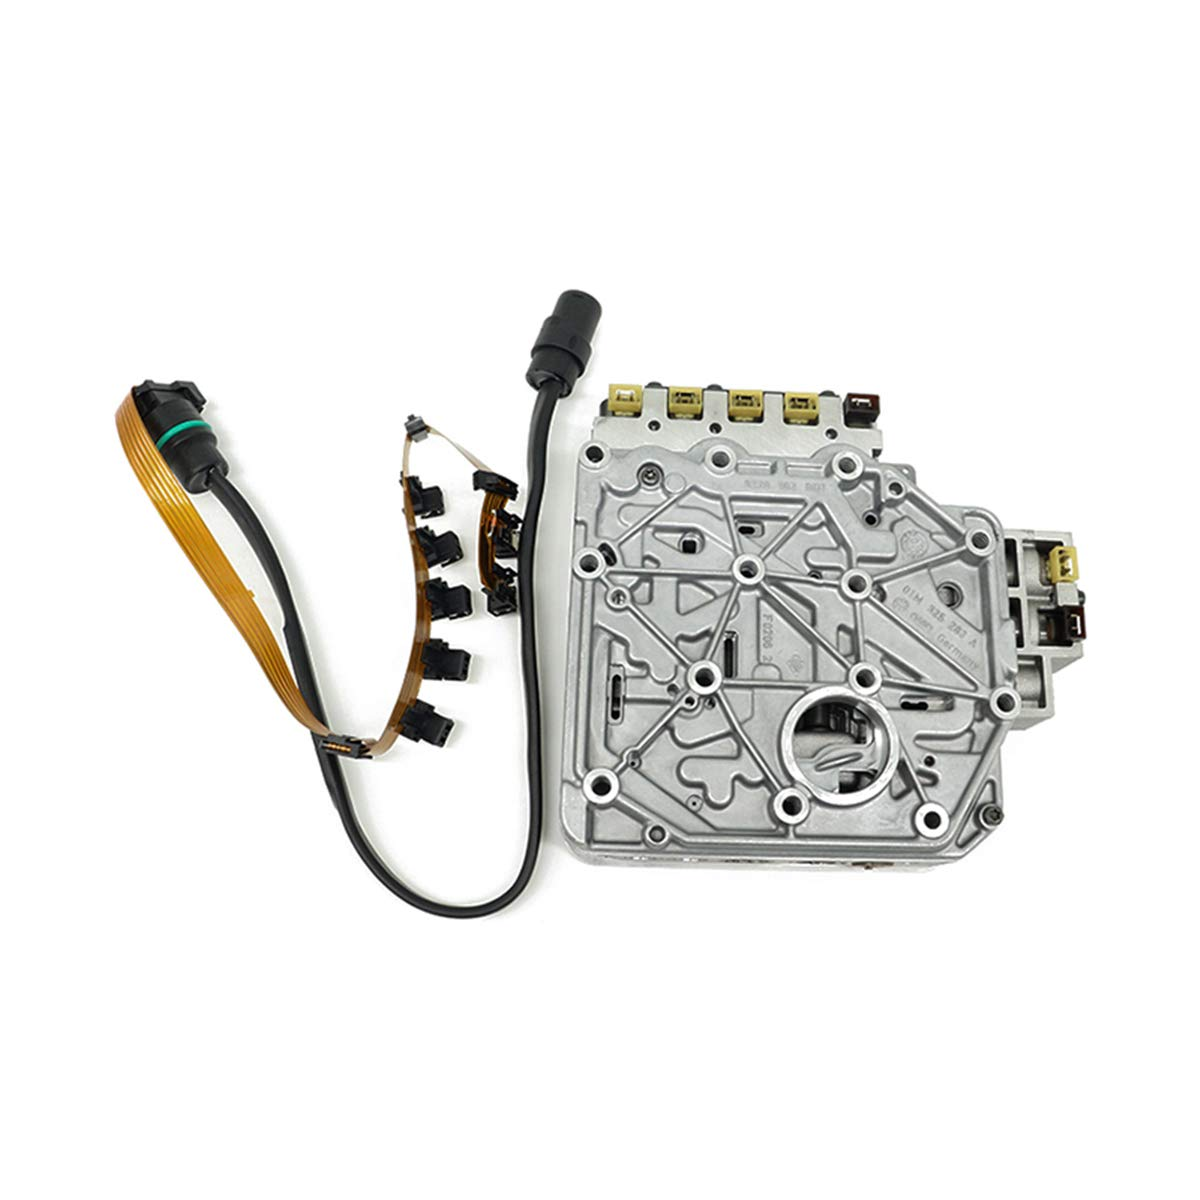 Automatic Transmission Valve Body 01M Transmission Wiring Harness Replacement for 99-05 VW 2.0L Jetta Golf MK4 TDI Engine Beetle 4 Speed 01M325039F 01M325283A